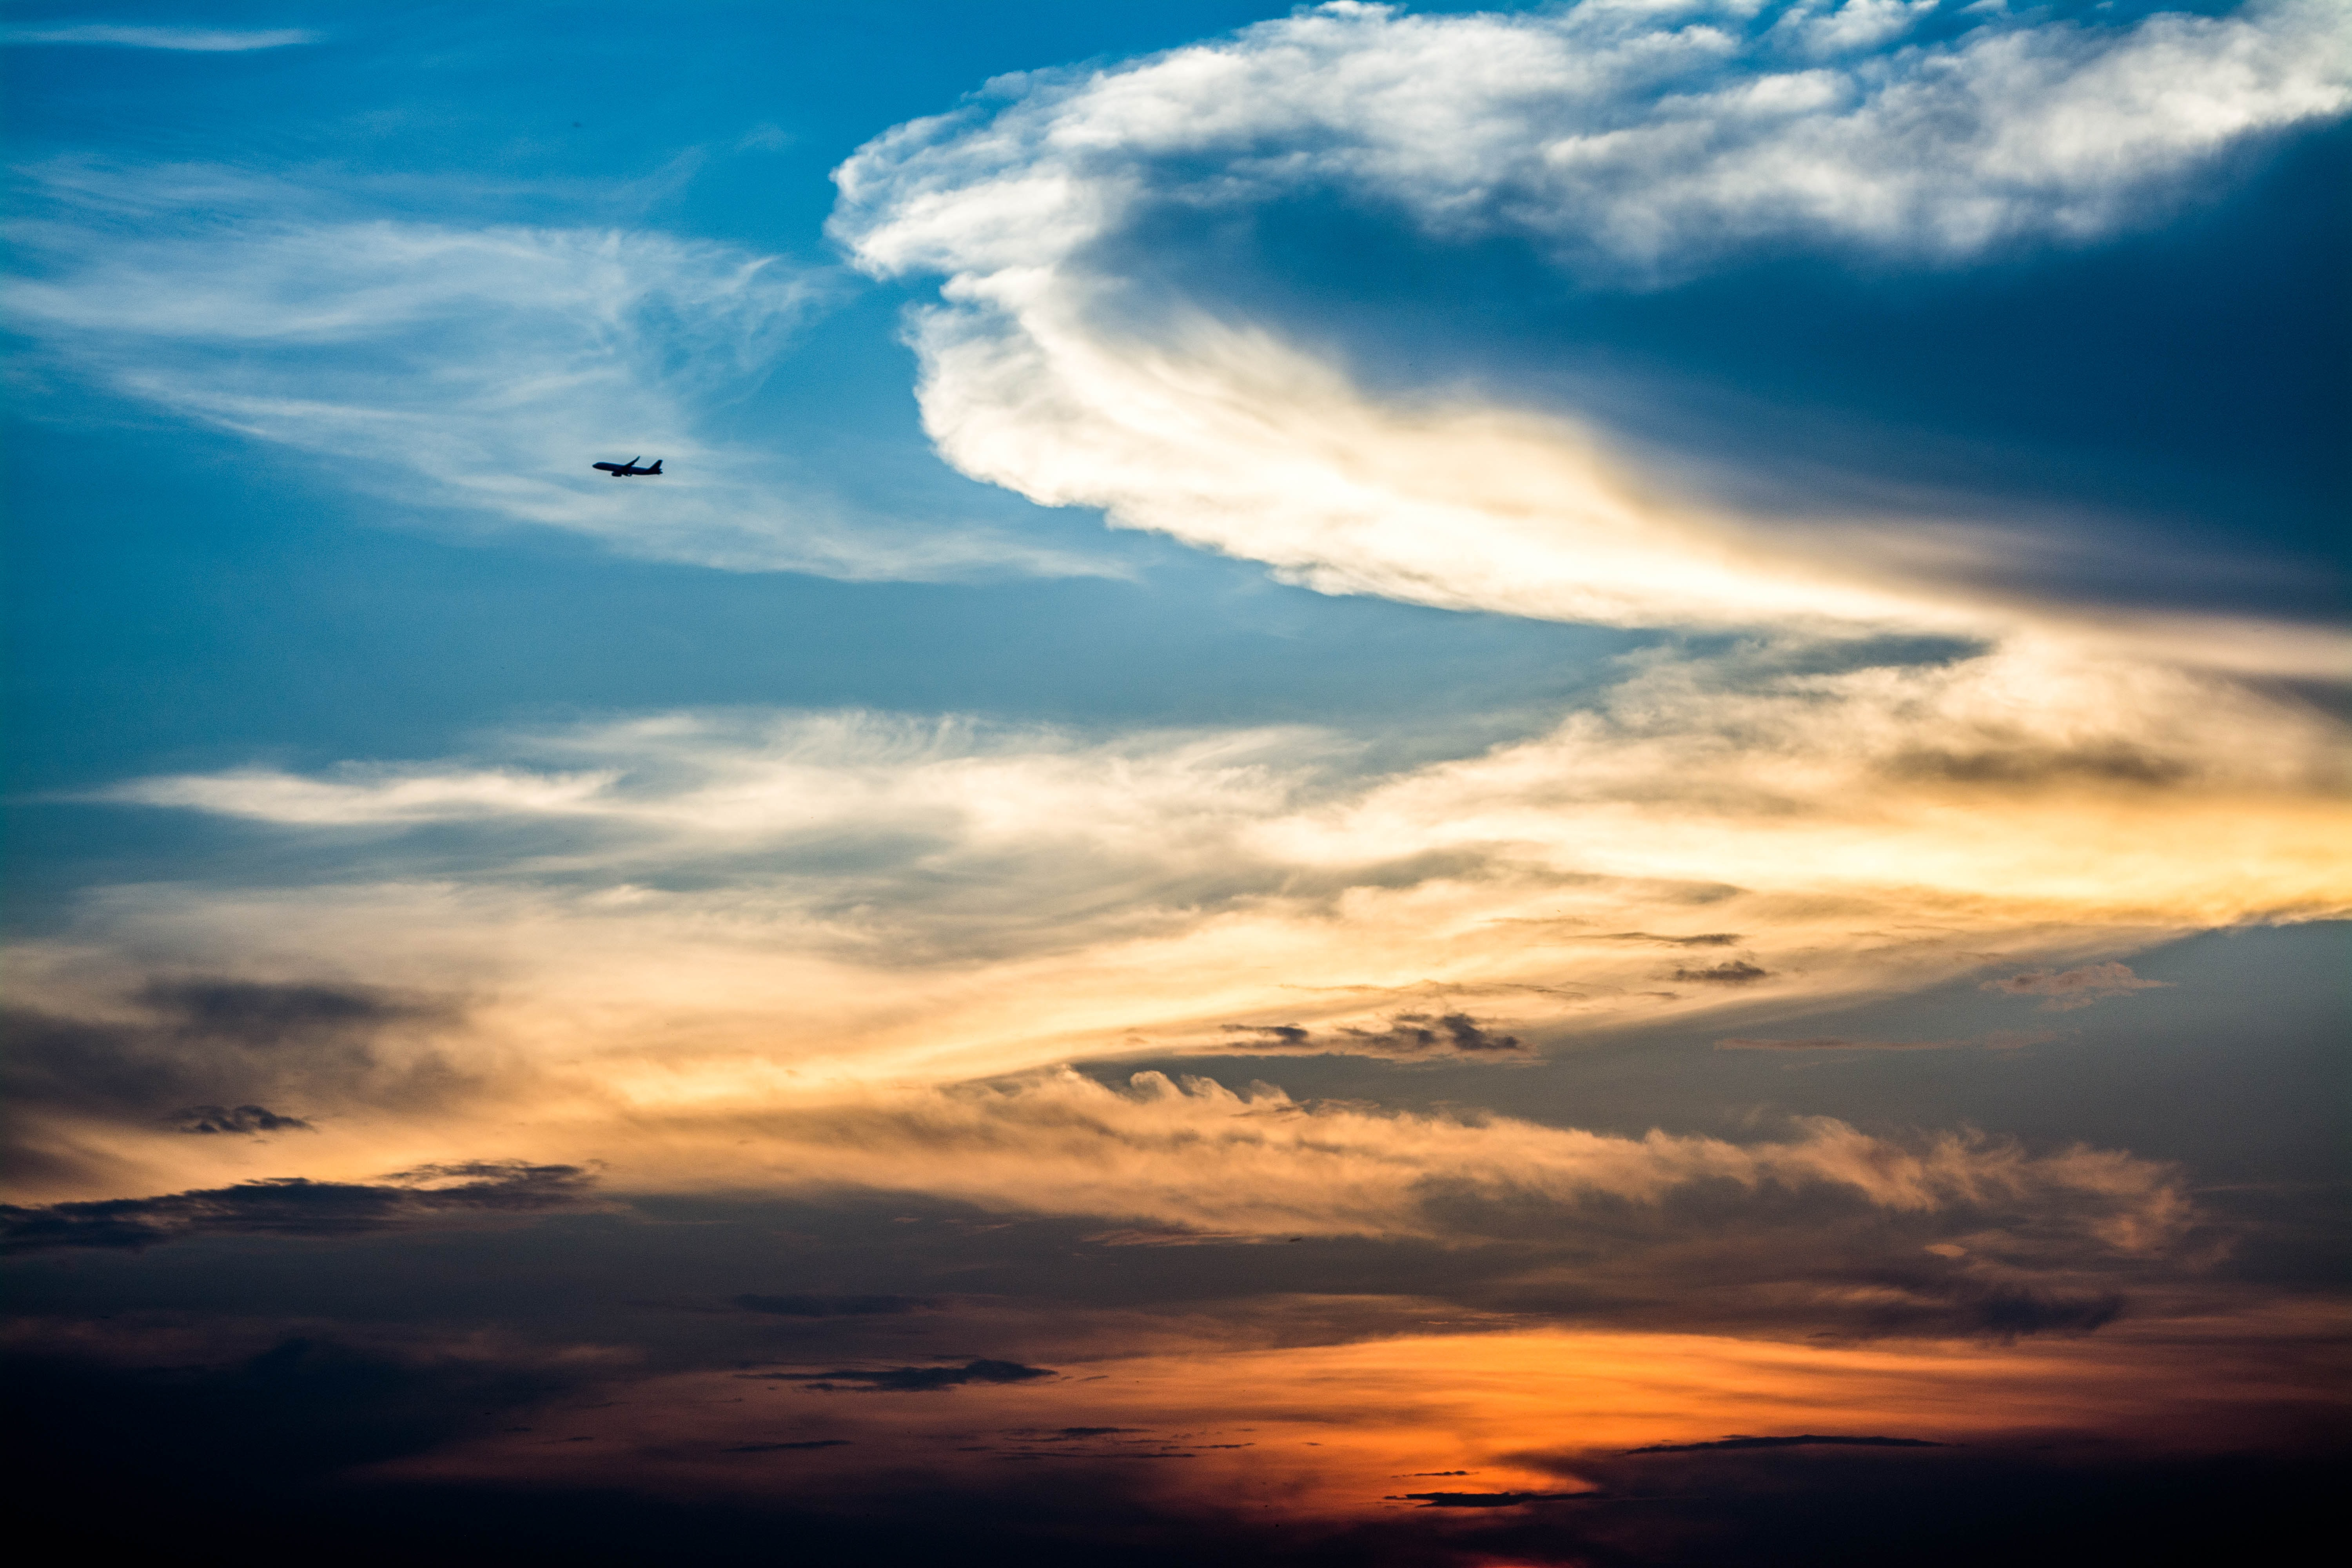 low-angle photography of airplane on golden hour